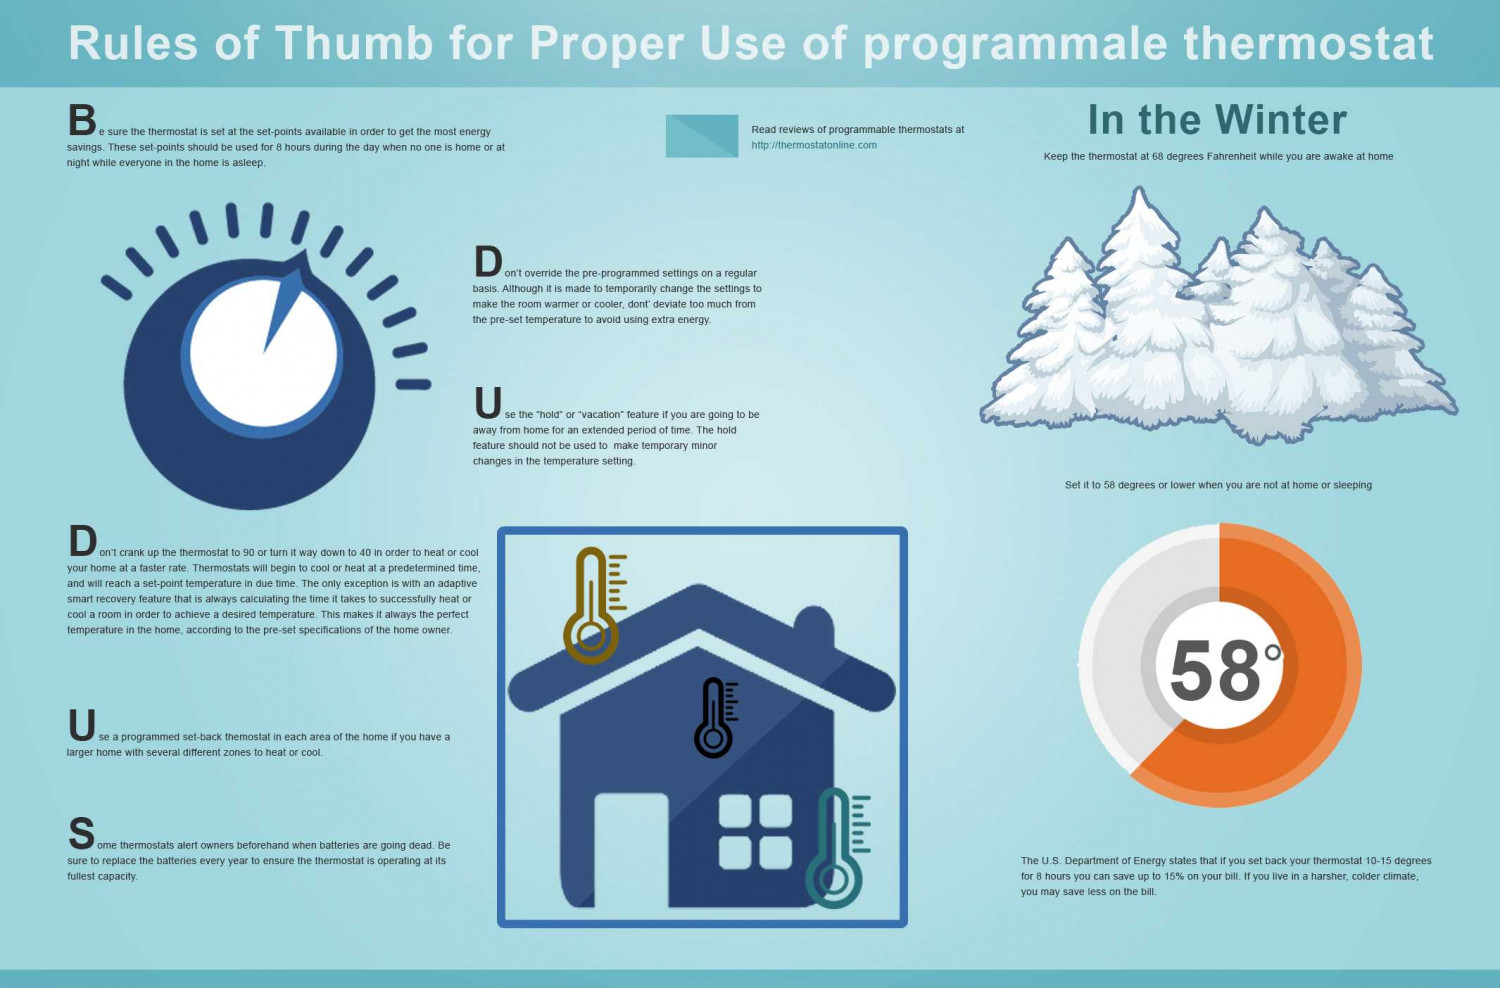 Rules of thumb for proper use programmable thermostat